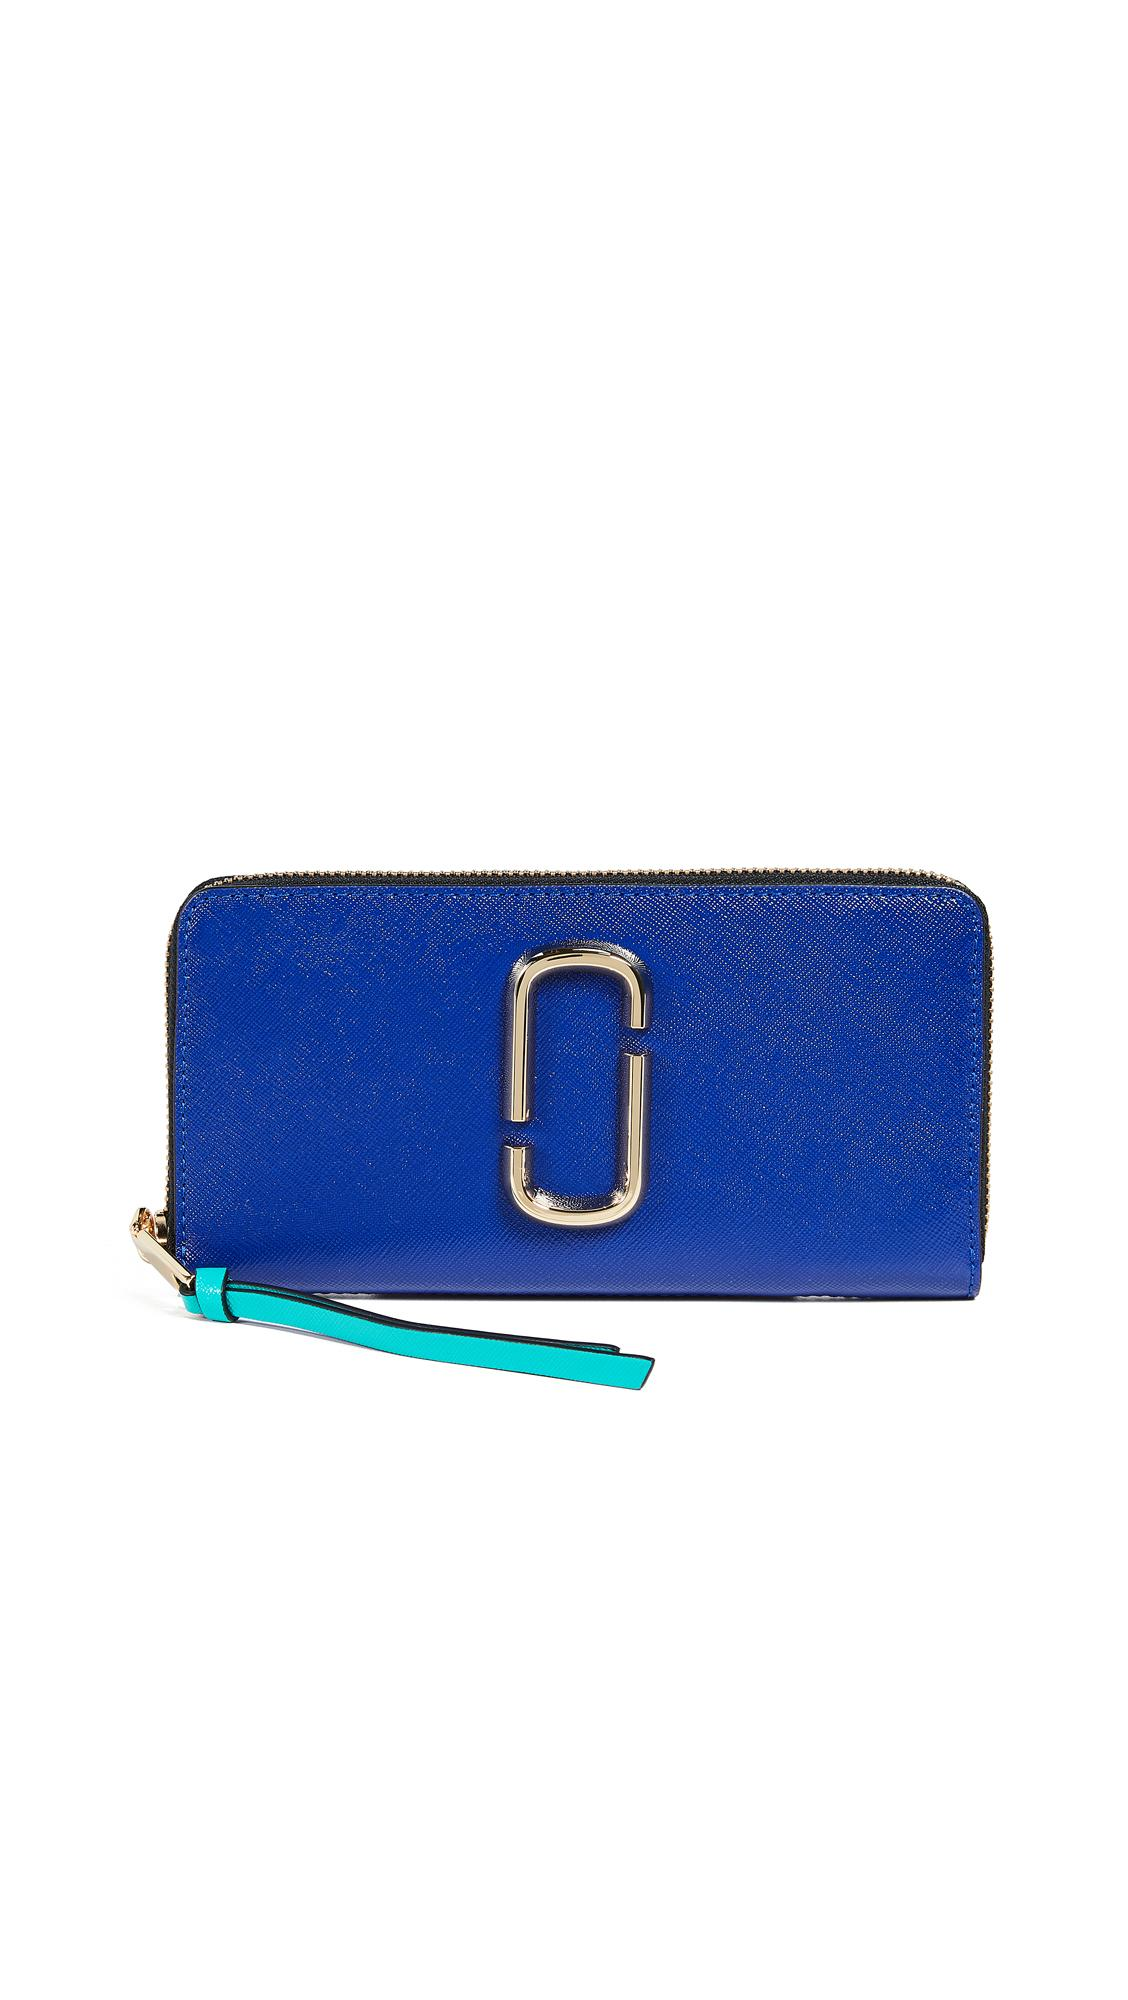 Marc Jacobs Snapshot Standard Continental Wallet In Academy Blue Multi